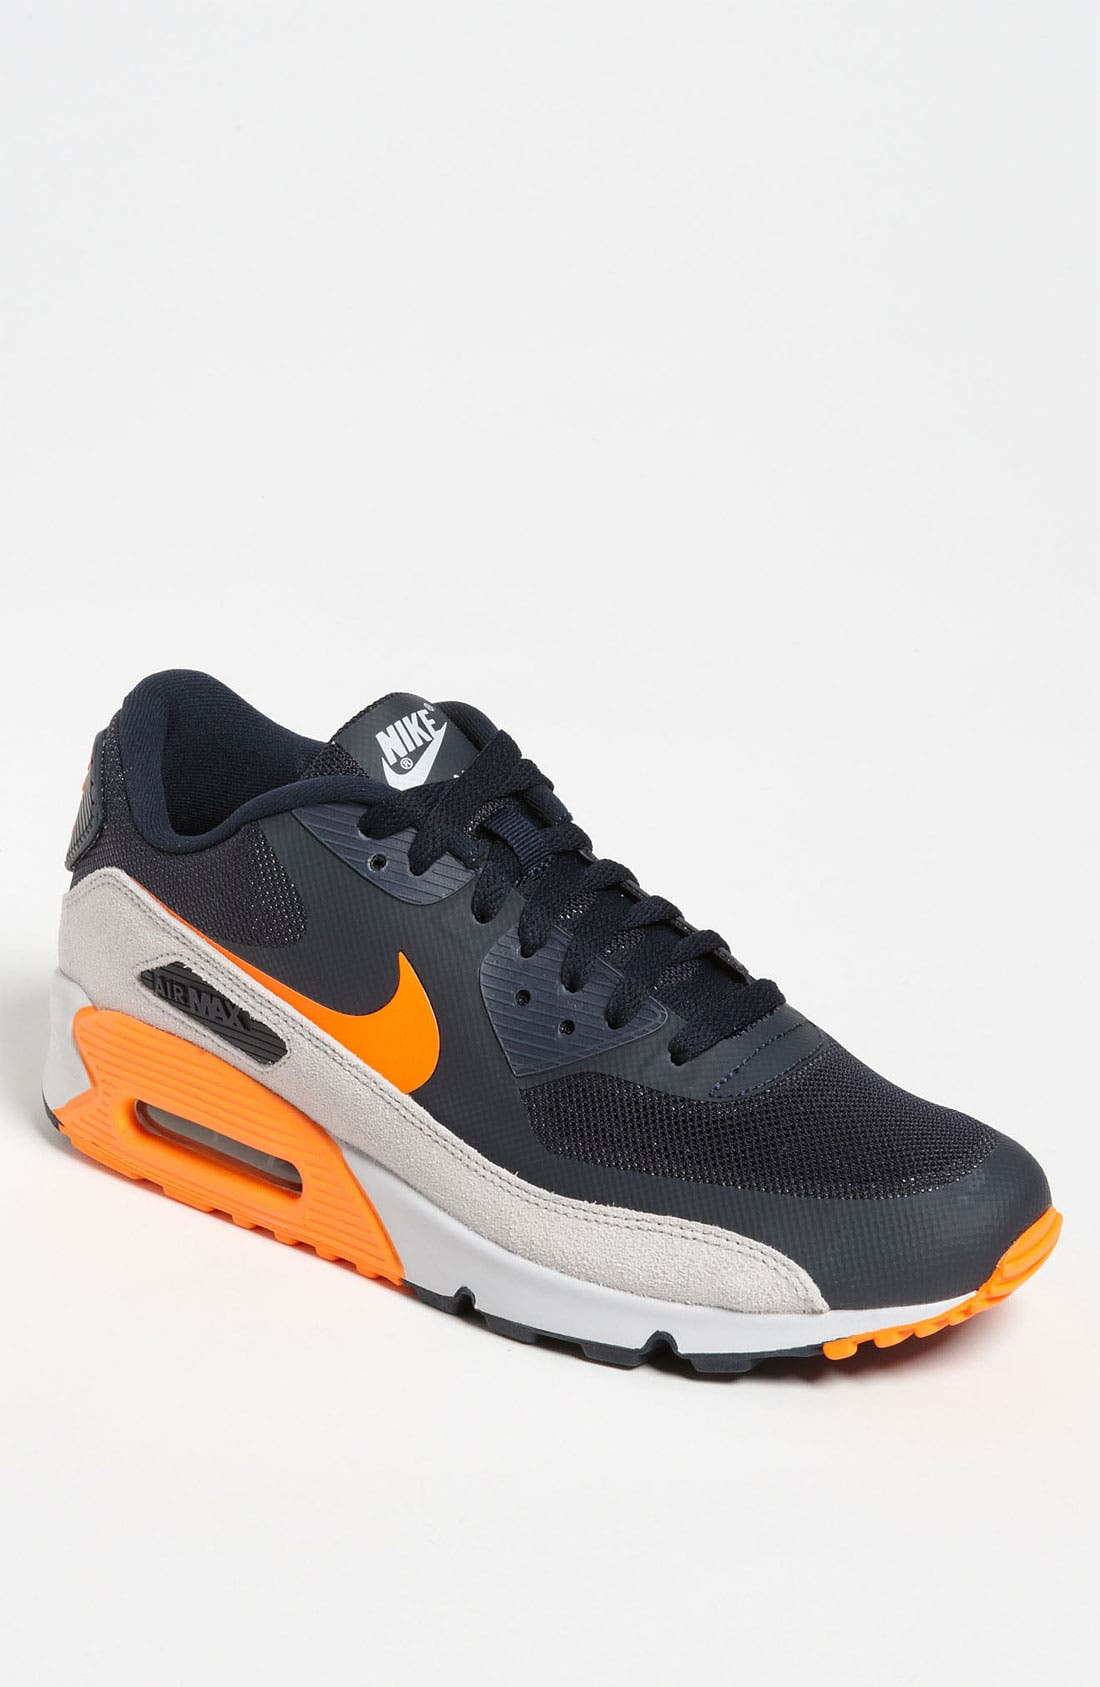 Main Image - Nike 'Air Max 90 Premium' Sneaker (Men)